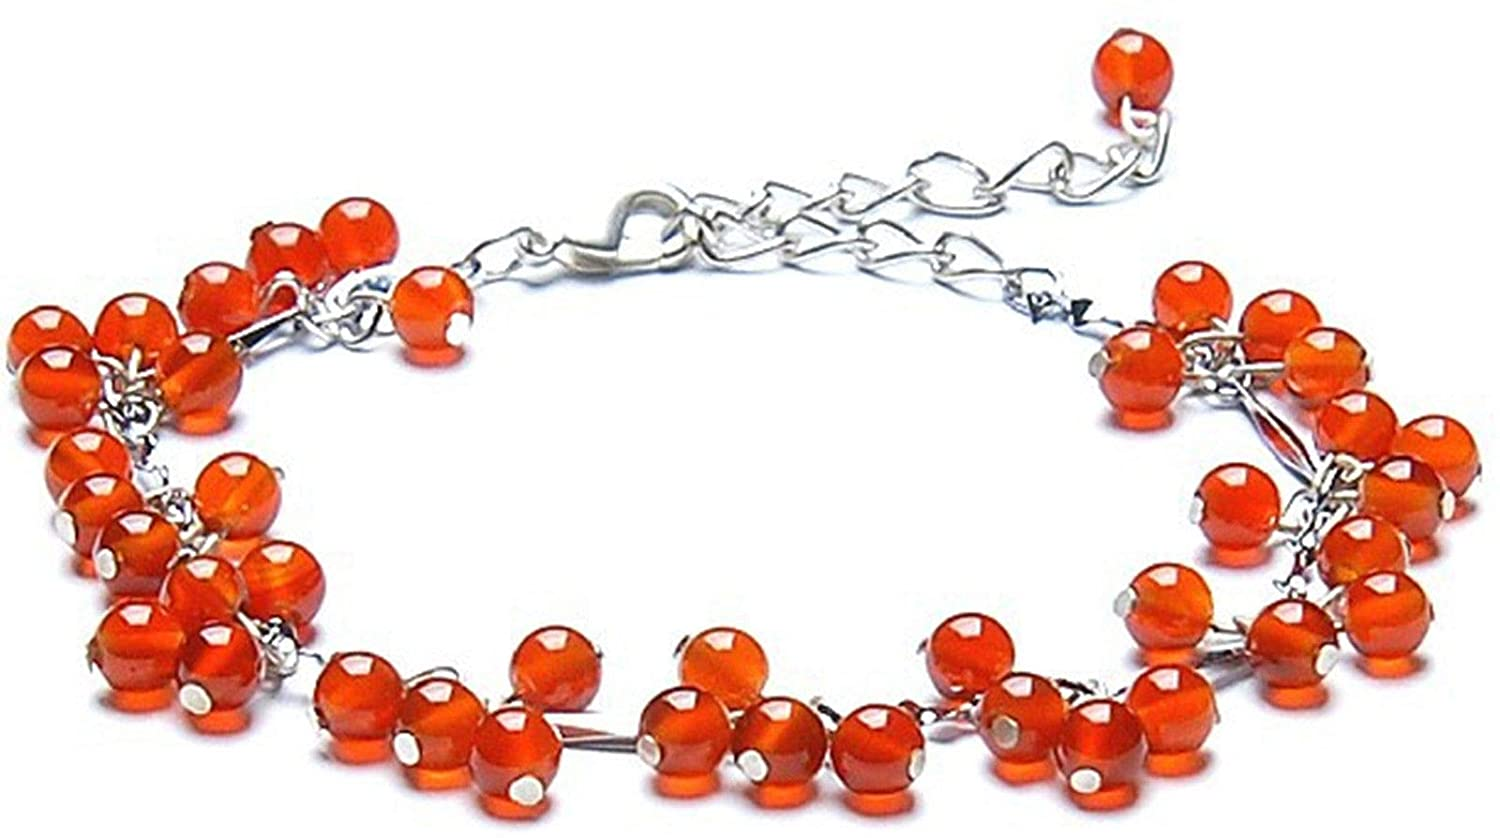 Feng Shui Handmade Red Agate Beads Bracelet Amulet for Protection and Healing